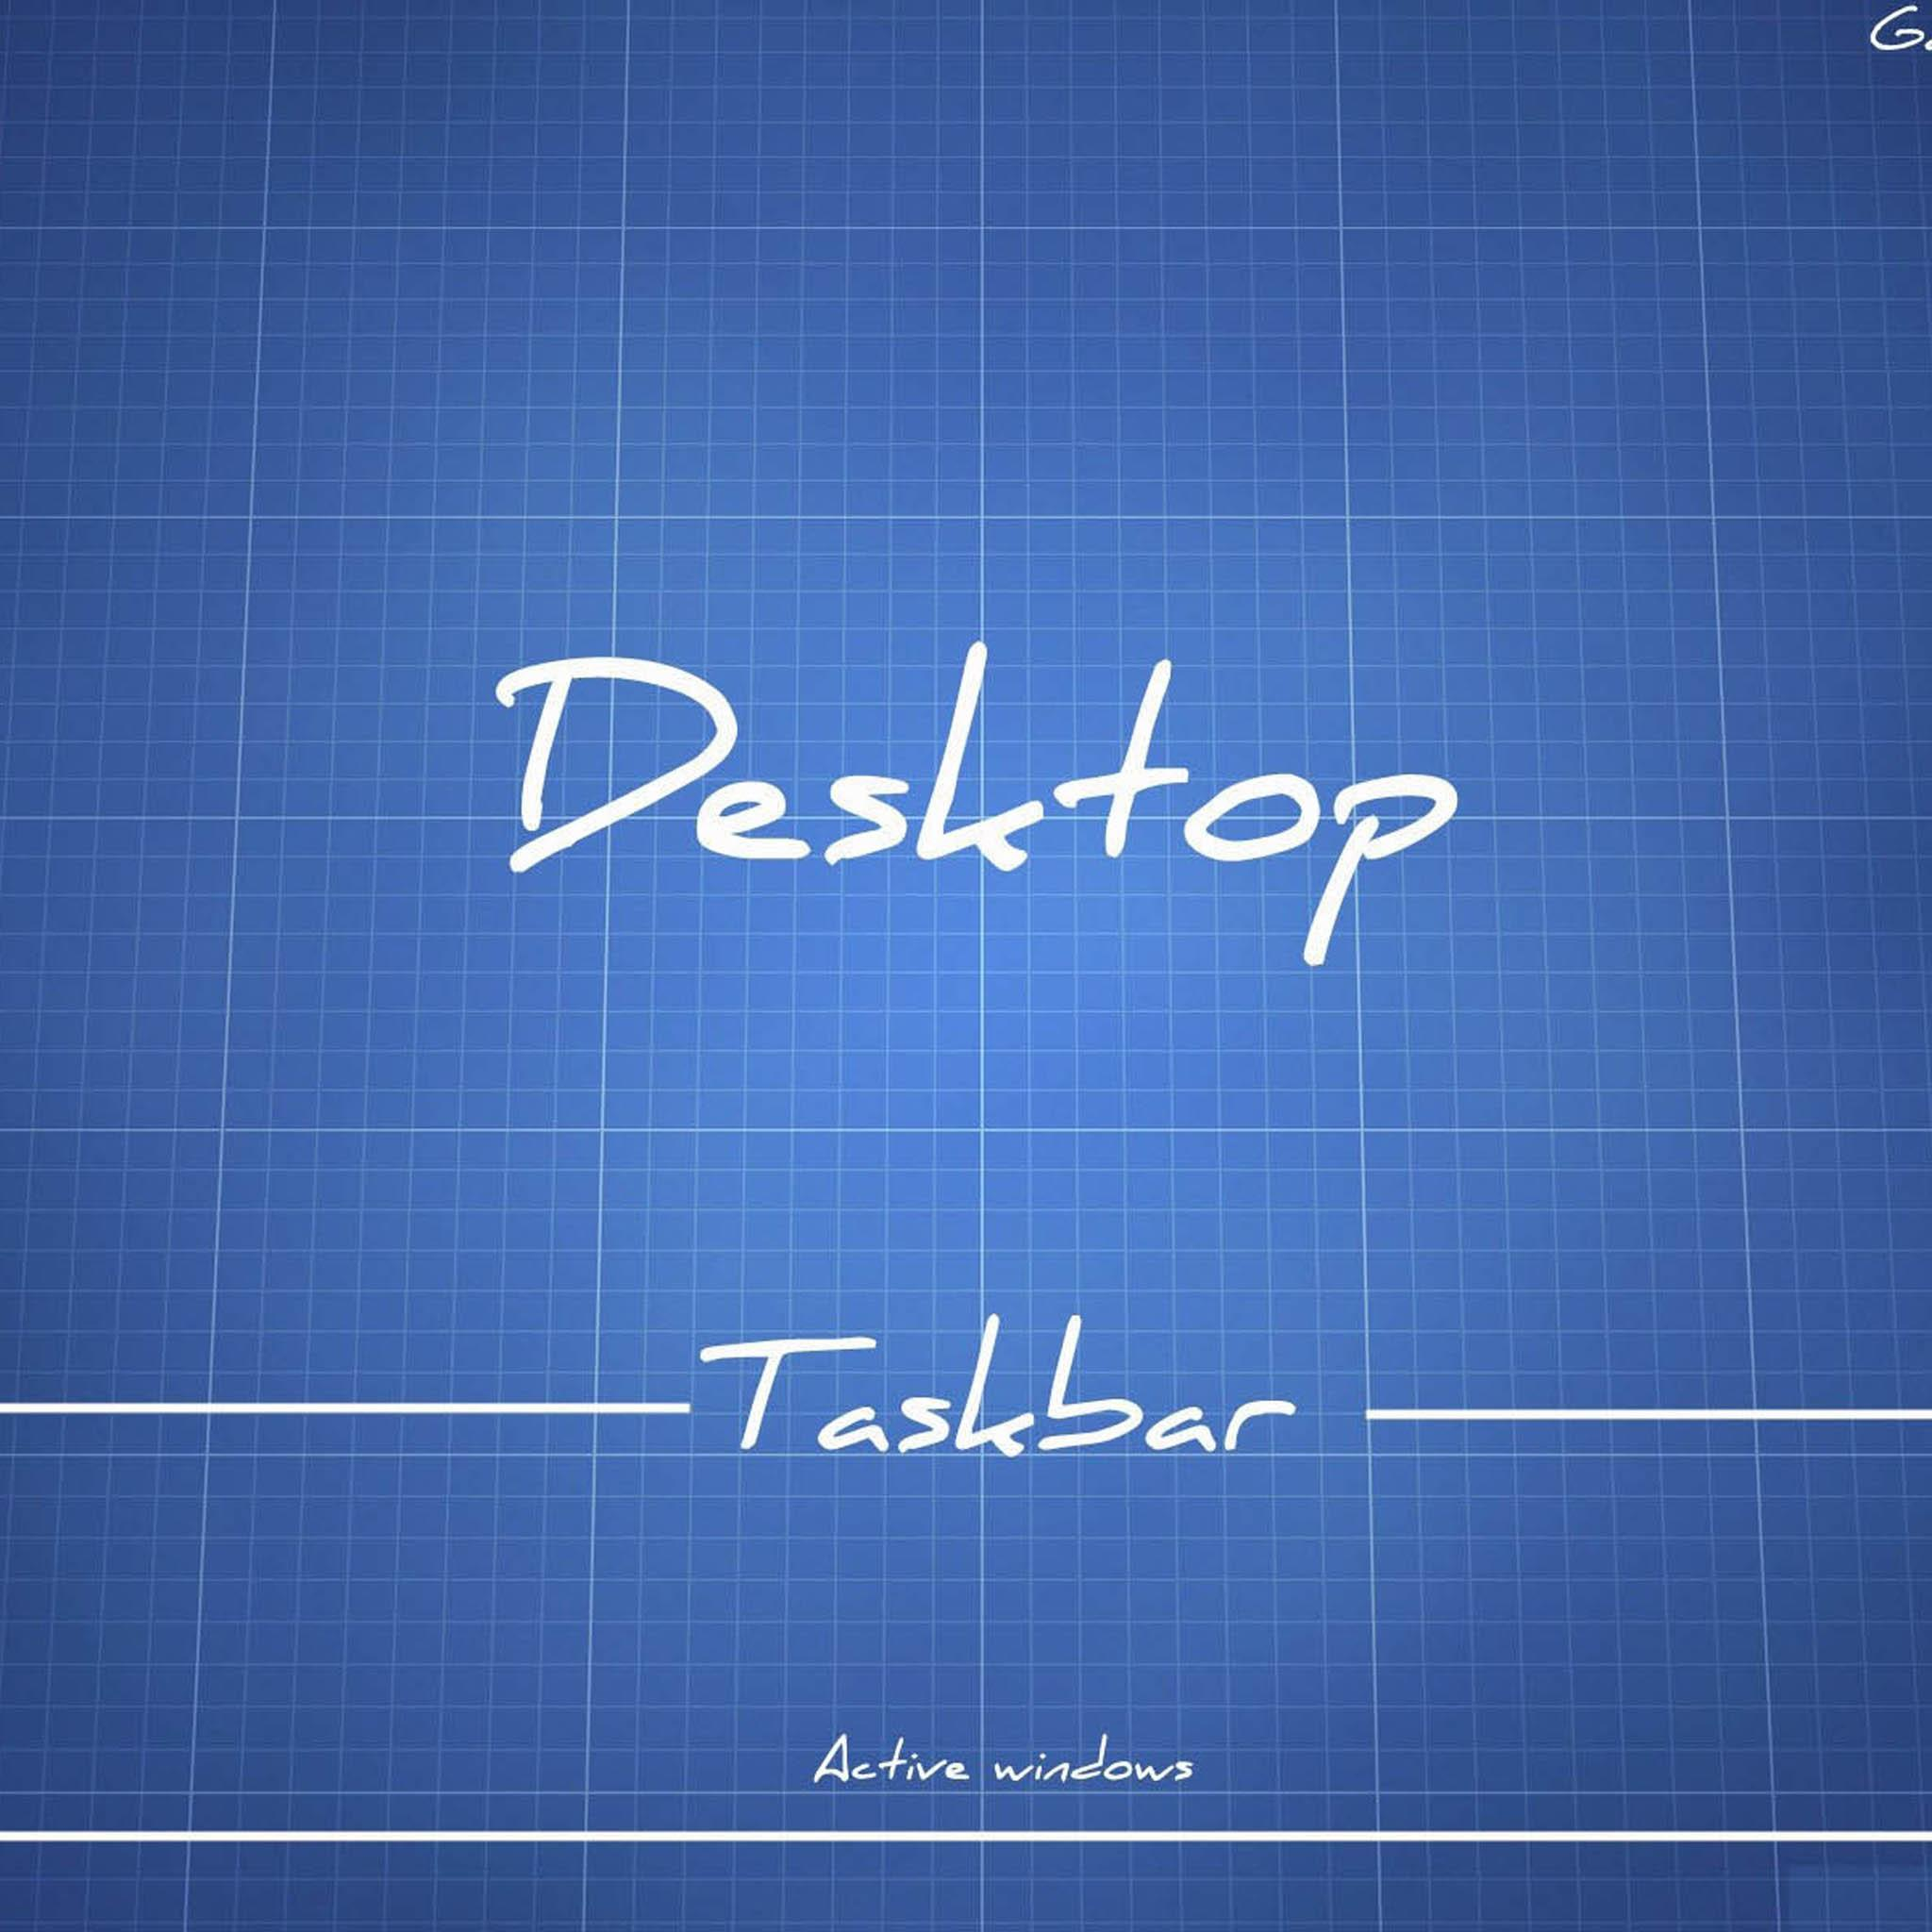 Desktop Blueprint iPad Wallpaper Desktop iPad Wallpaper Gallery 2048x2048